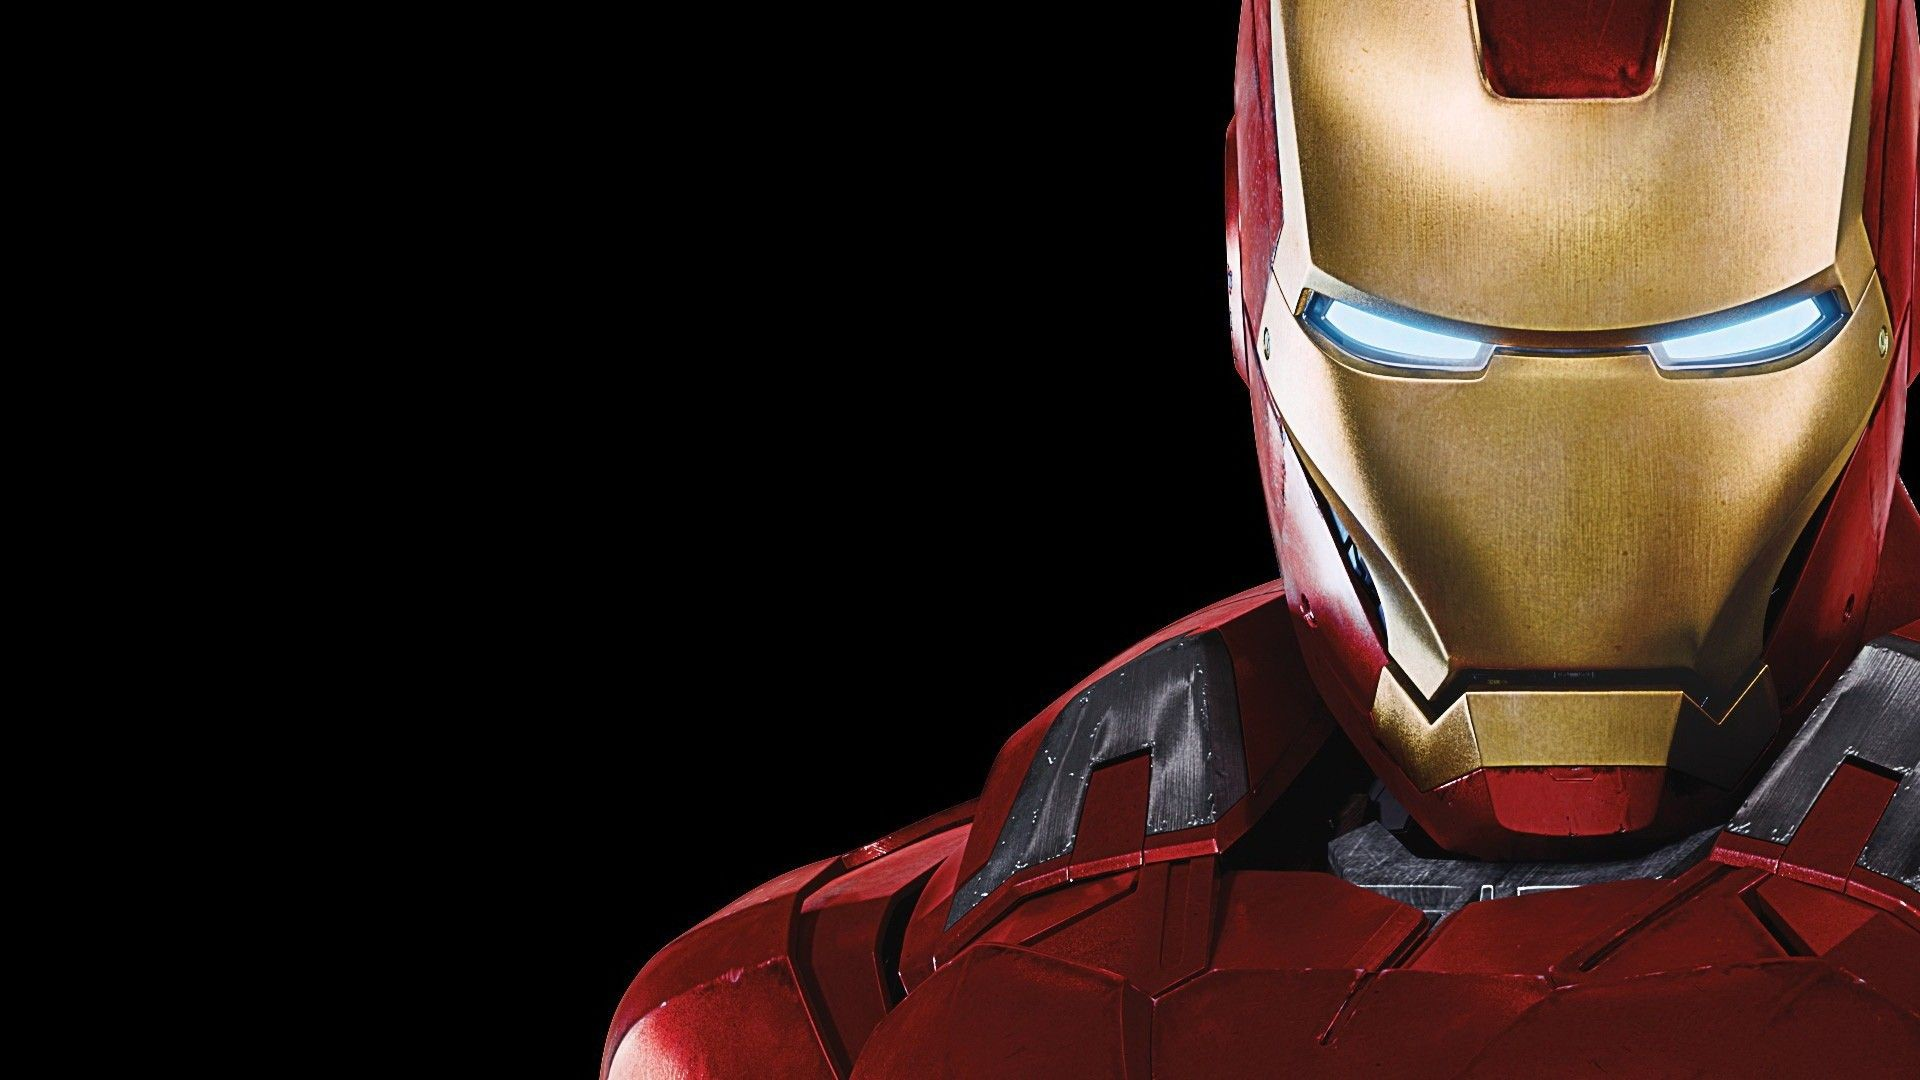 ironman hd wallpapers images hd wallpapers buzz 1863×1046 iron man